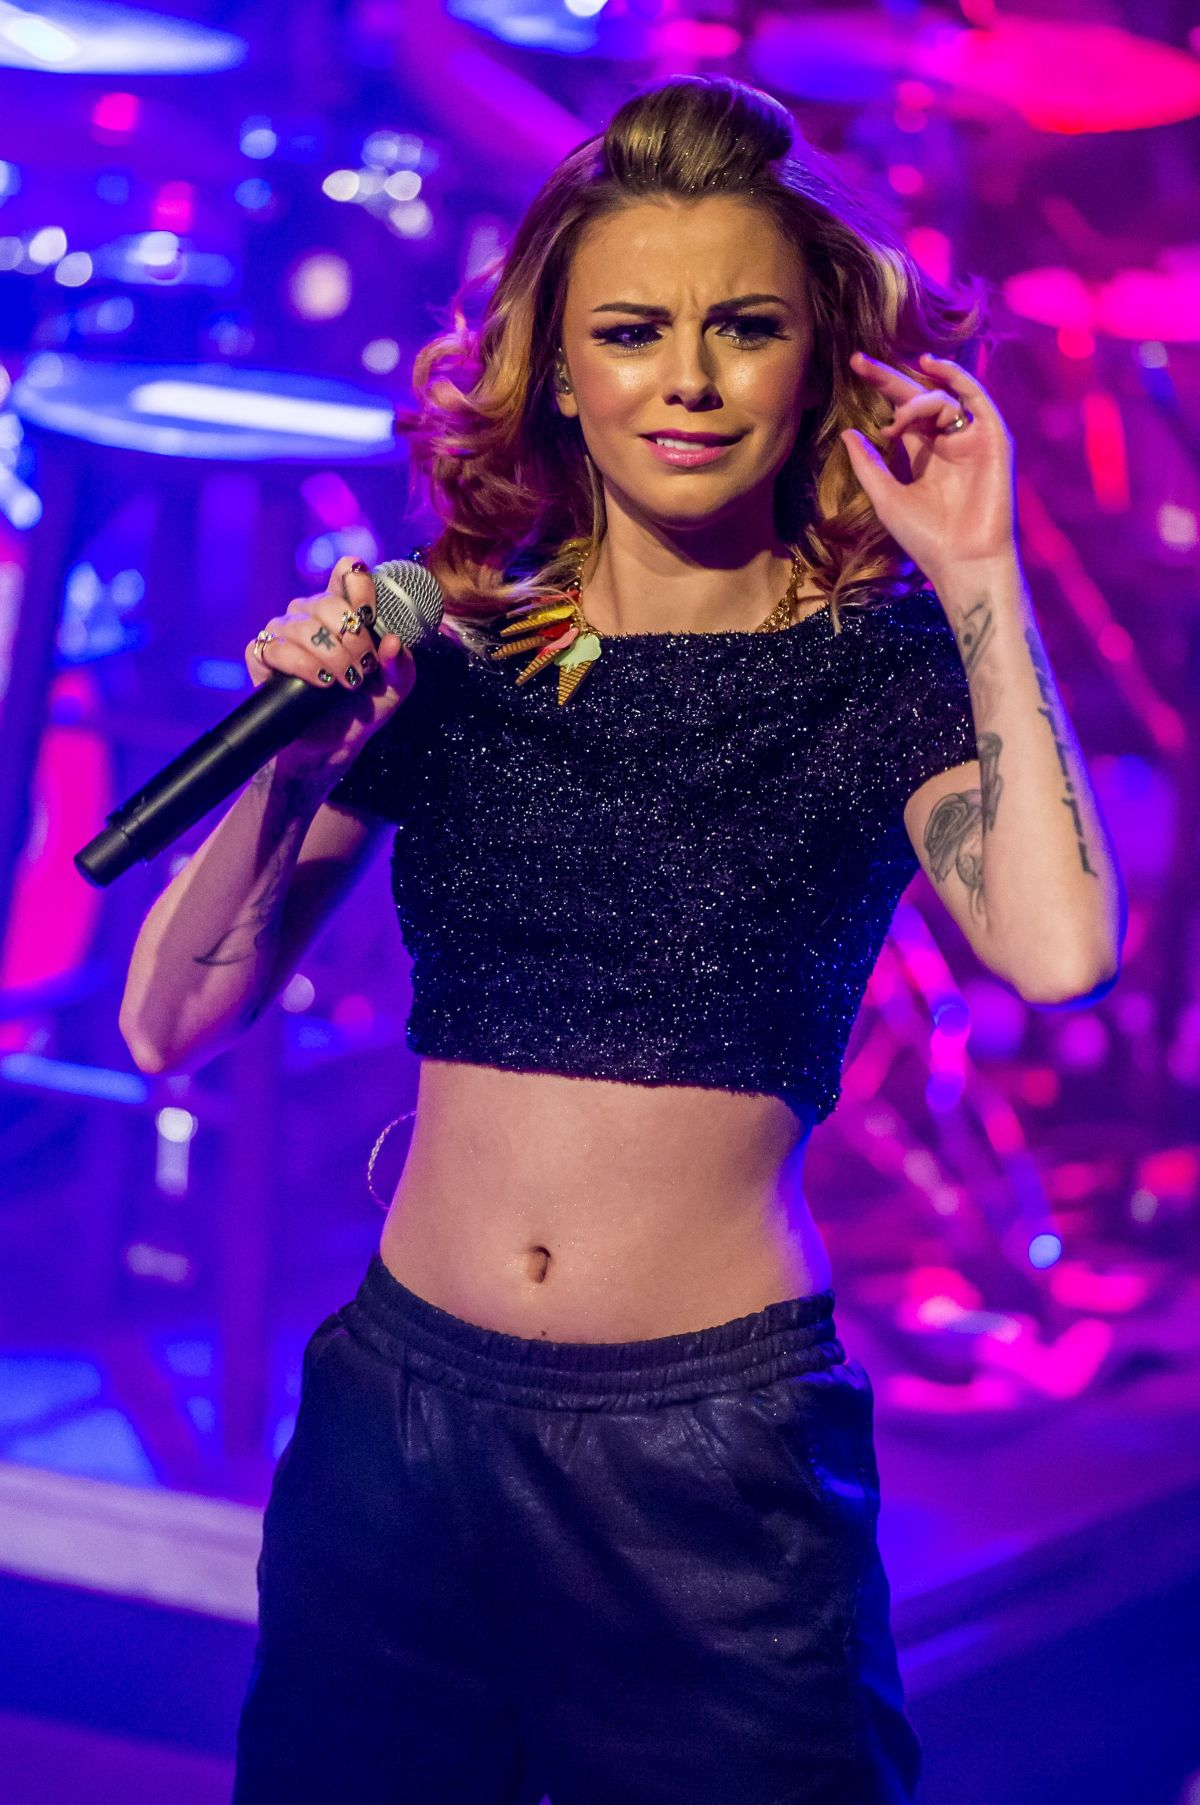 Cher Lloyd Performs At A Concert In Detroit Hawtcelebs